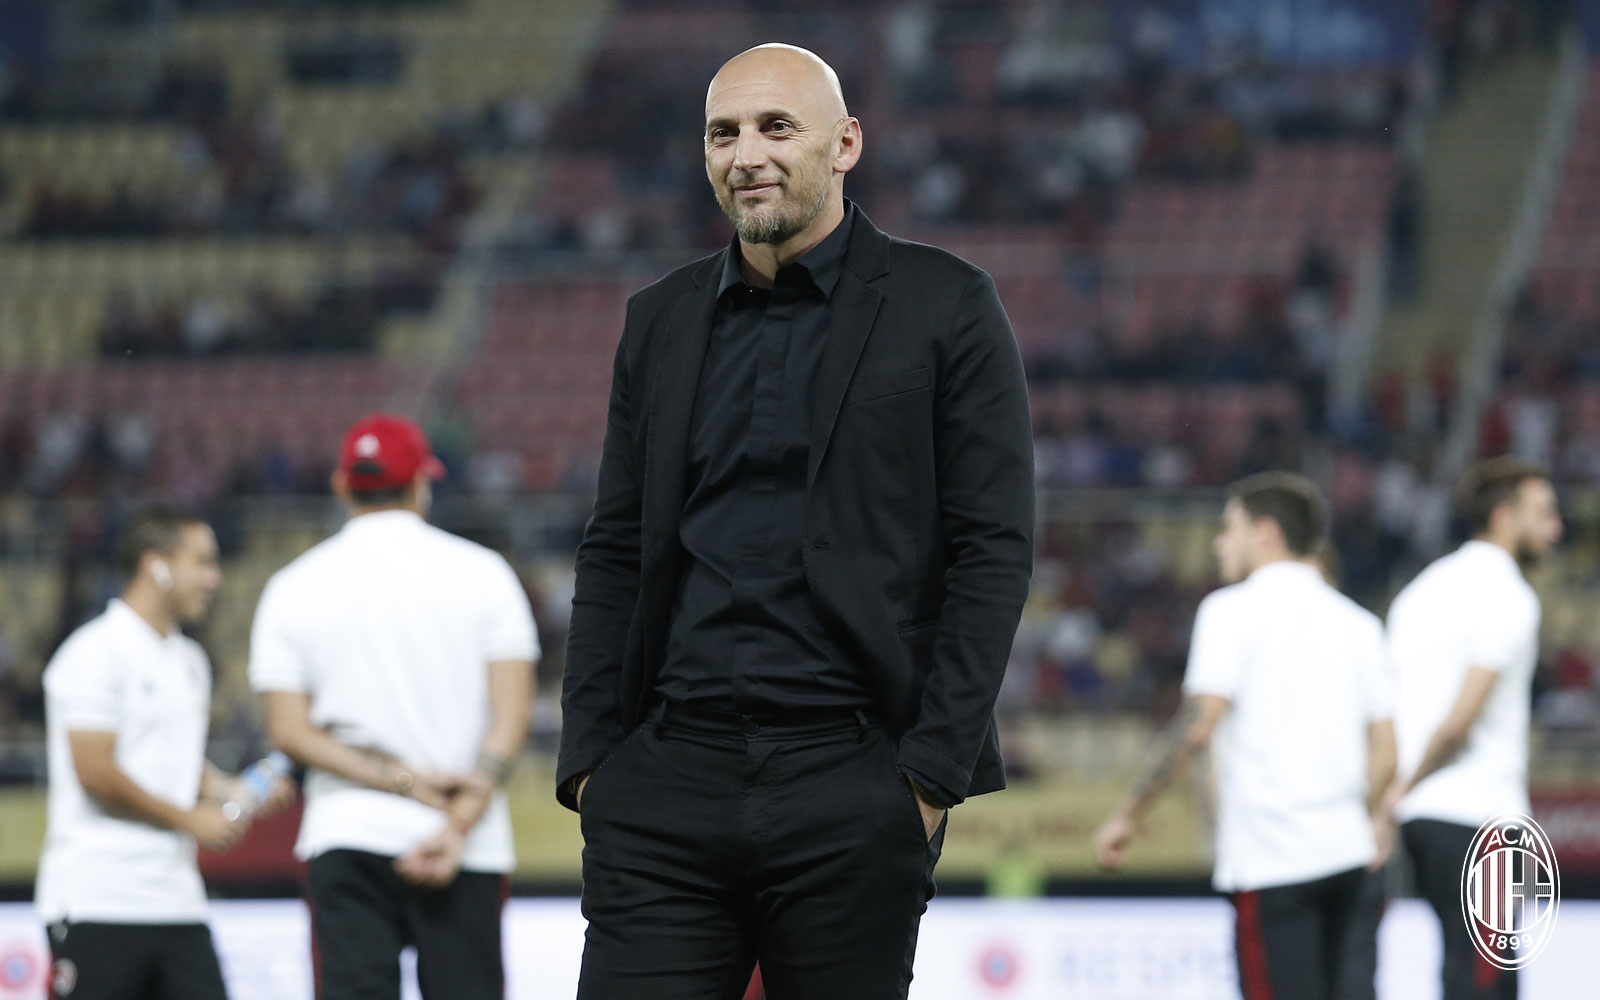 Christian Abbiati before Shkëndija-Milan Milan at the Philip II Arena on the 24th of August, 2017. (@acmilan.com)